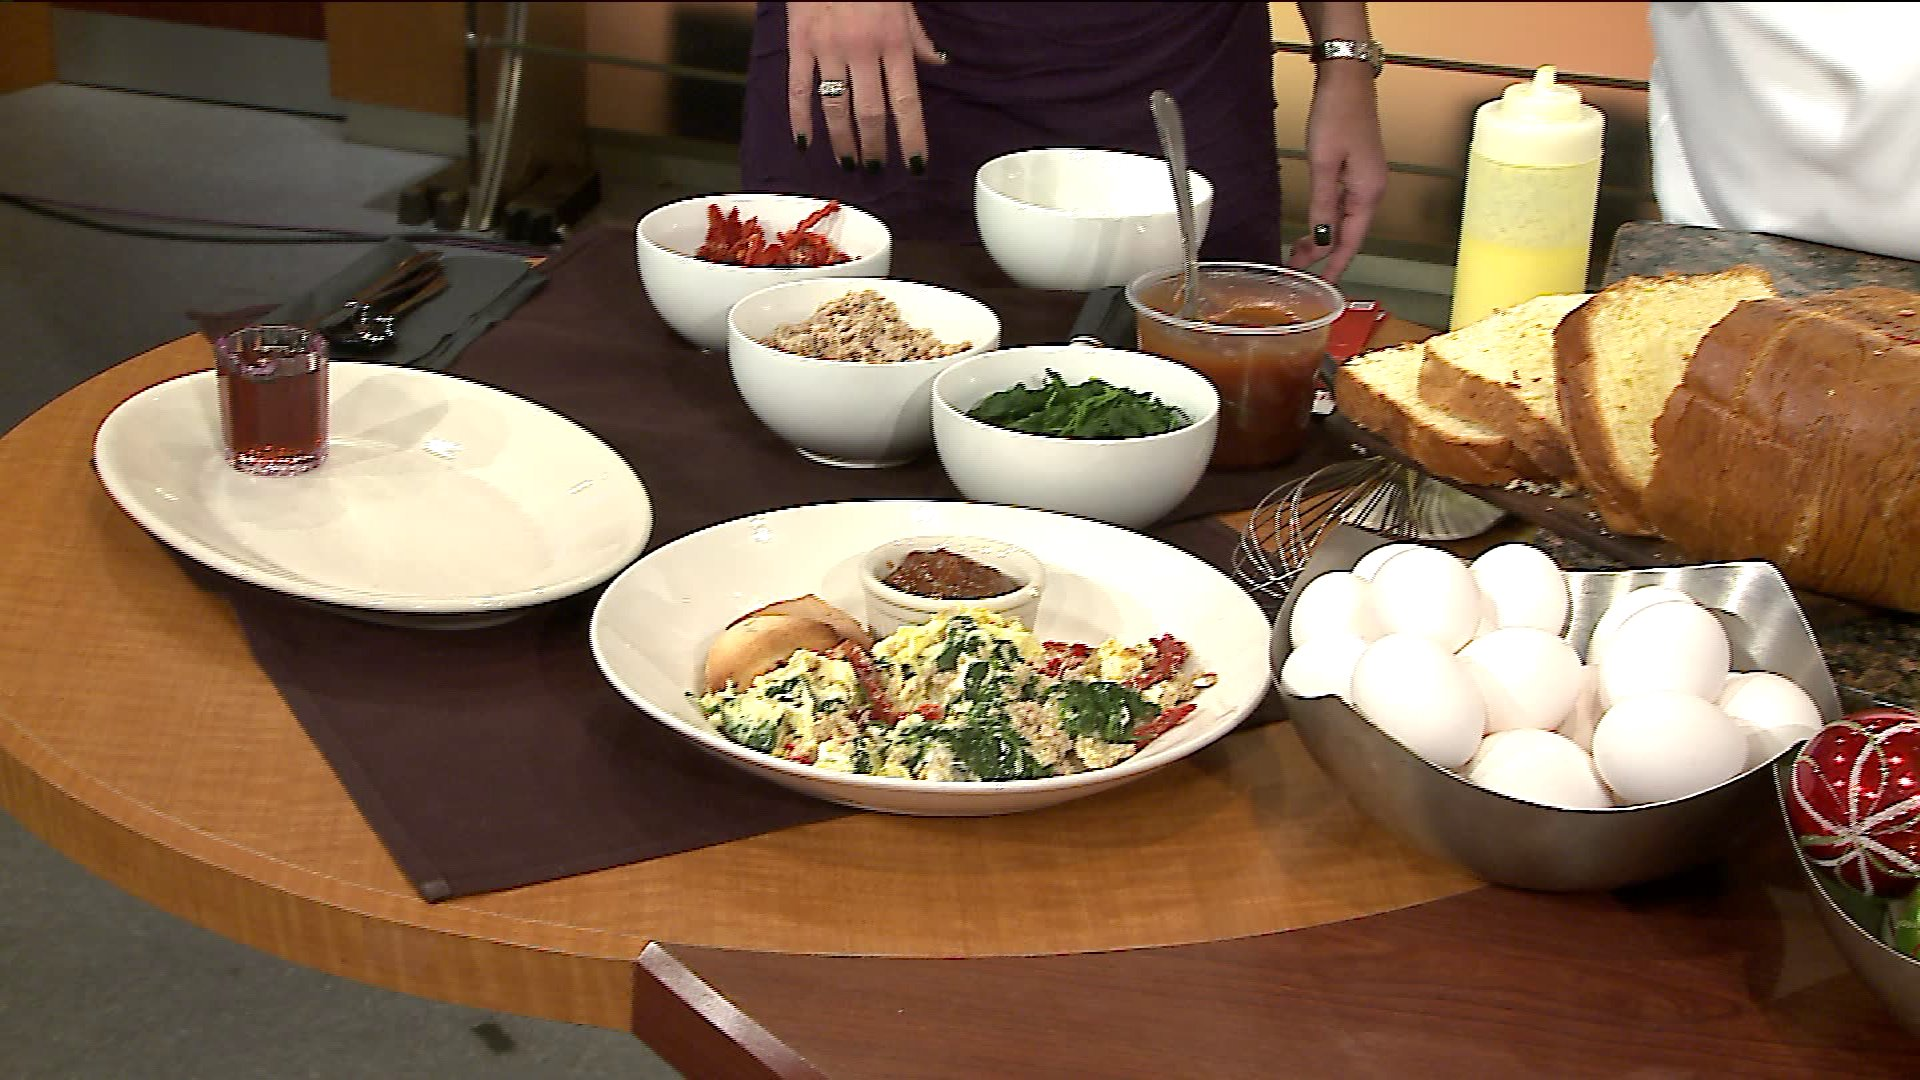 How to Make 2 Sweet and Savory Brunch Dishes